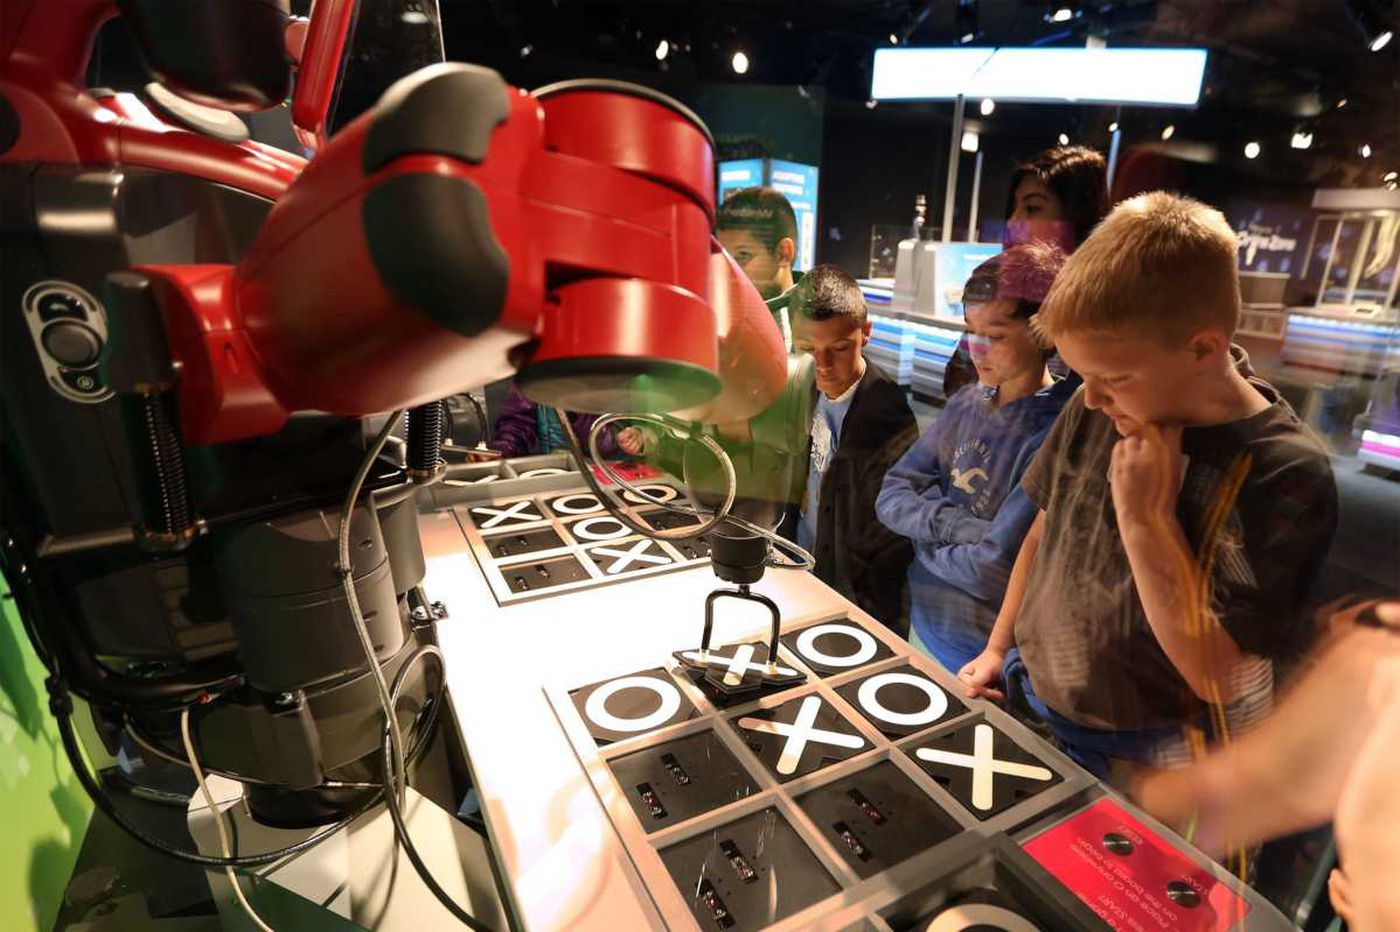 Robot Revolution: Get hands on with automatons at the Franklin Institute